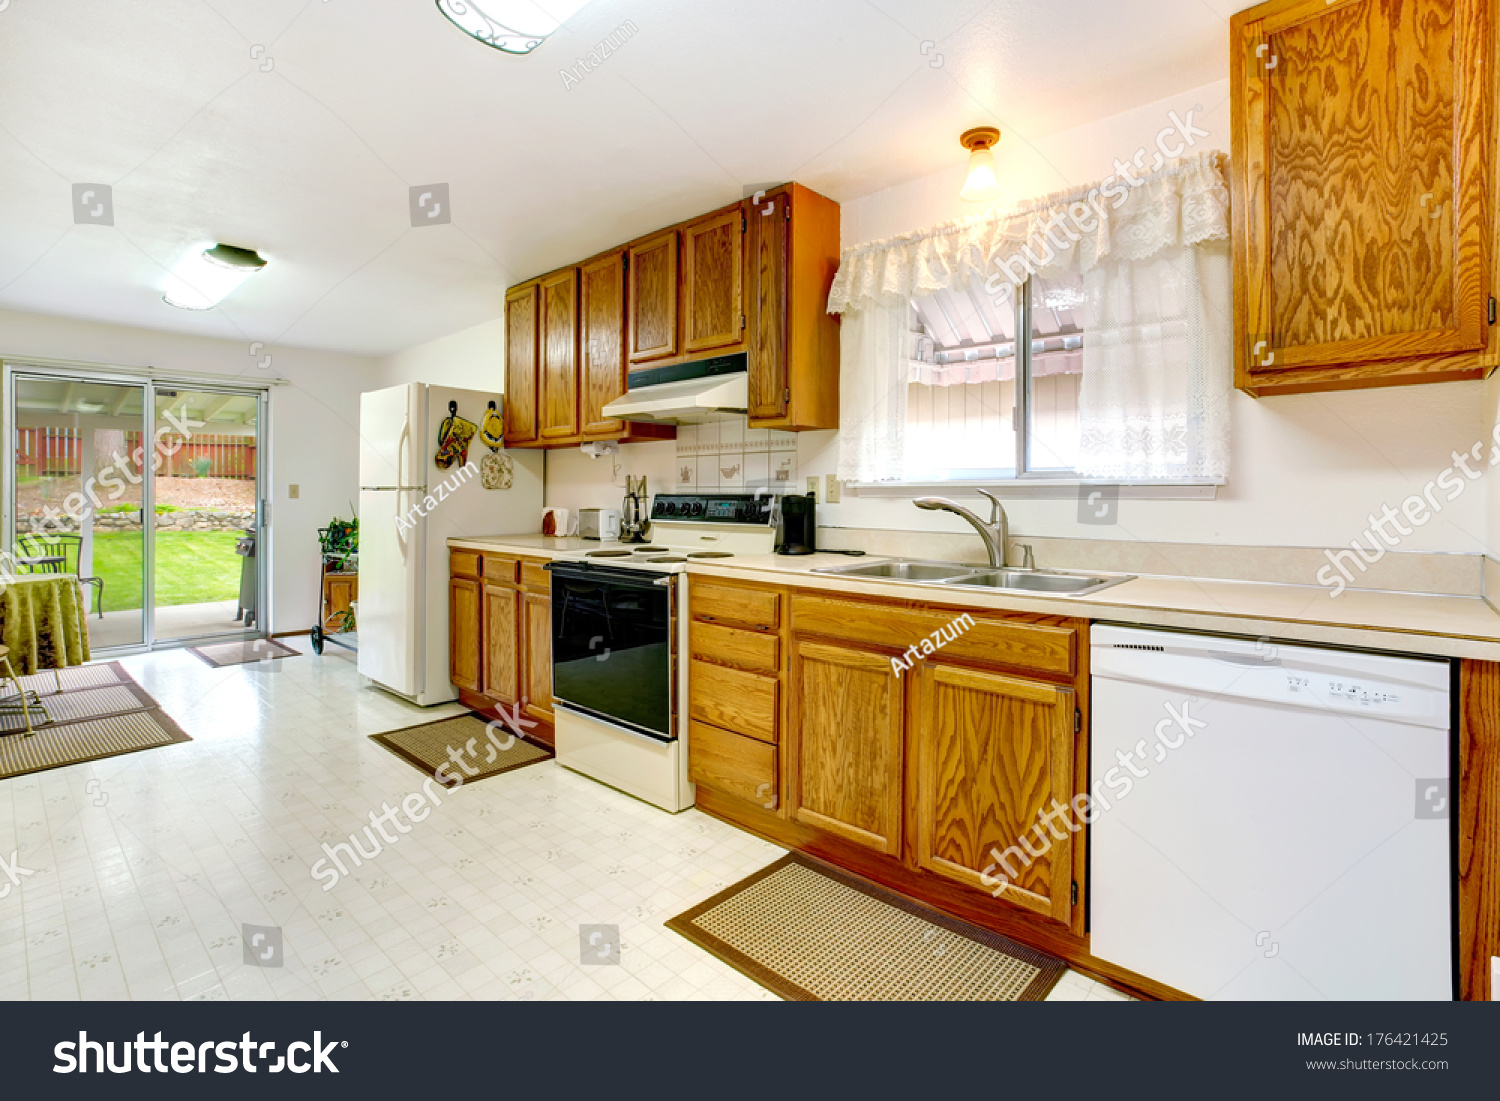 Bright Kitchen Wood Cabinets Tile Floor Stock Photo Edit Now 176421425